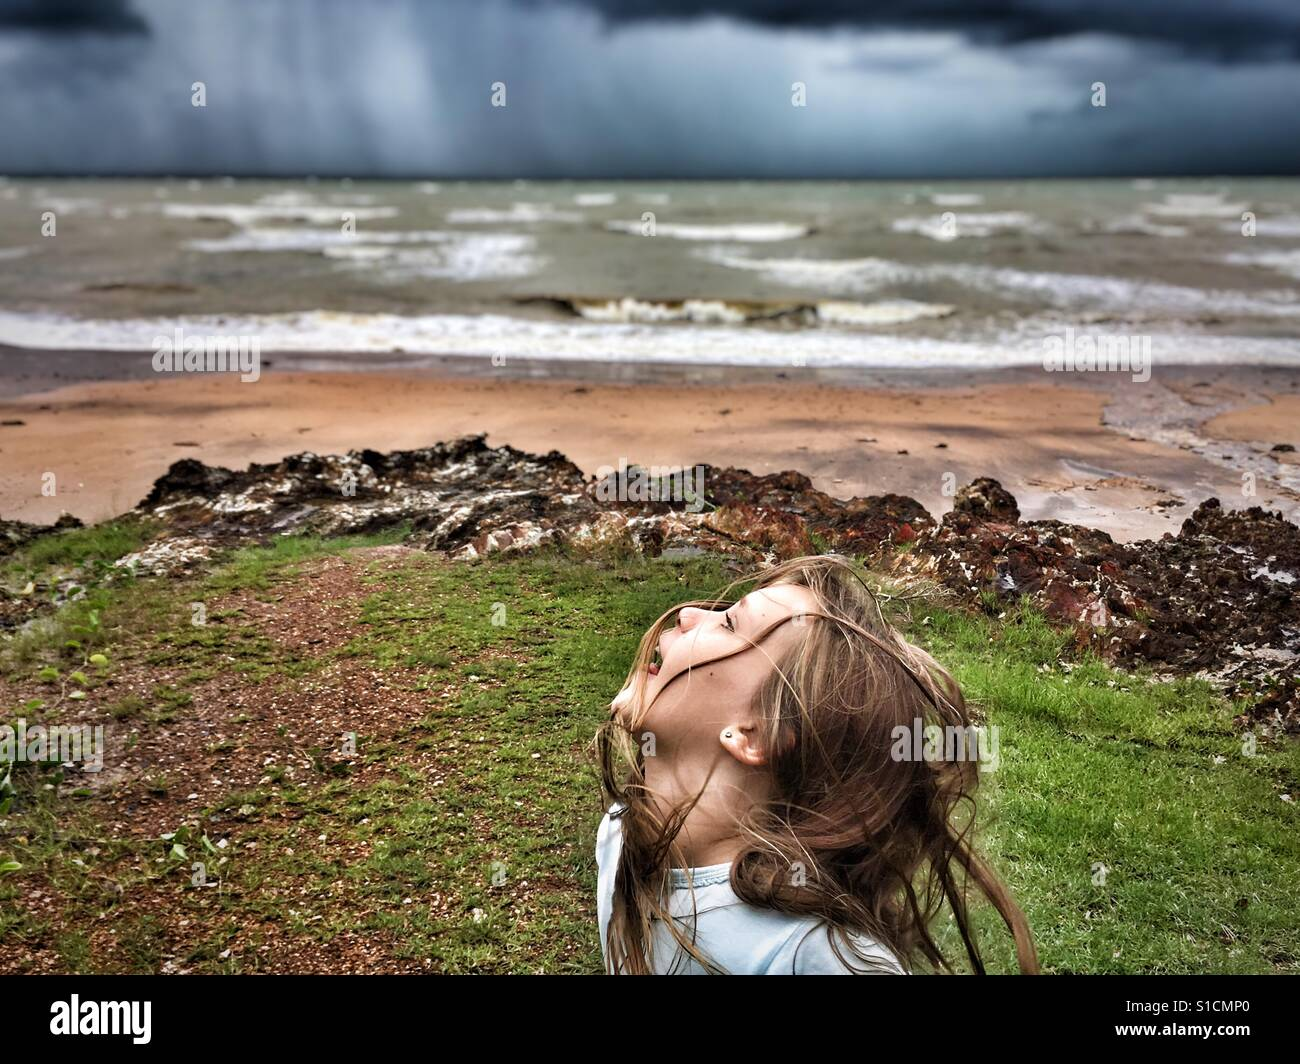 Child playing in front of the incoming storm. - Stock Image